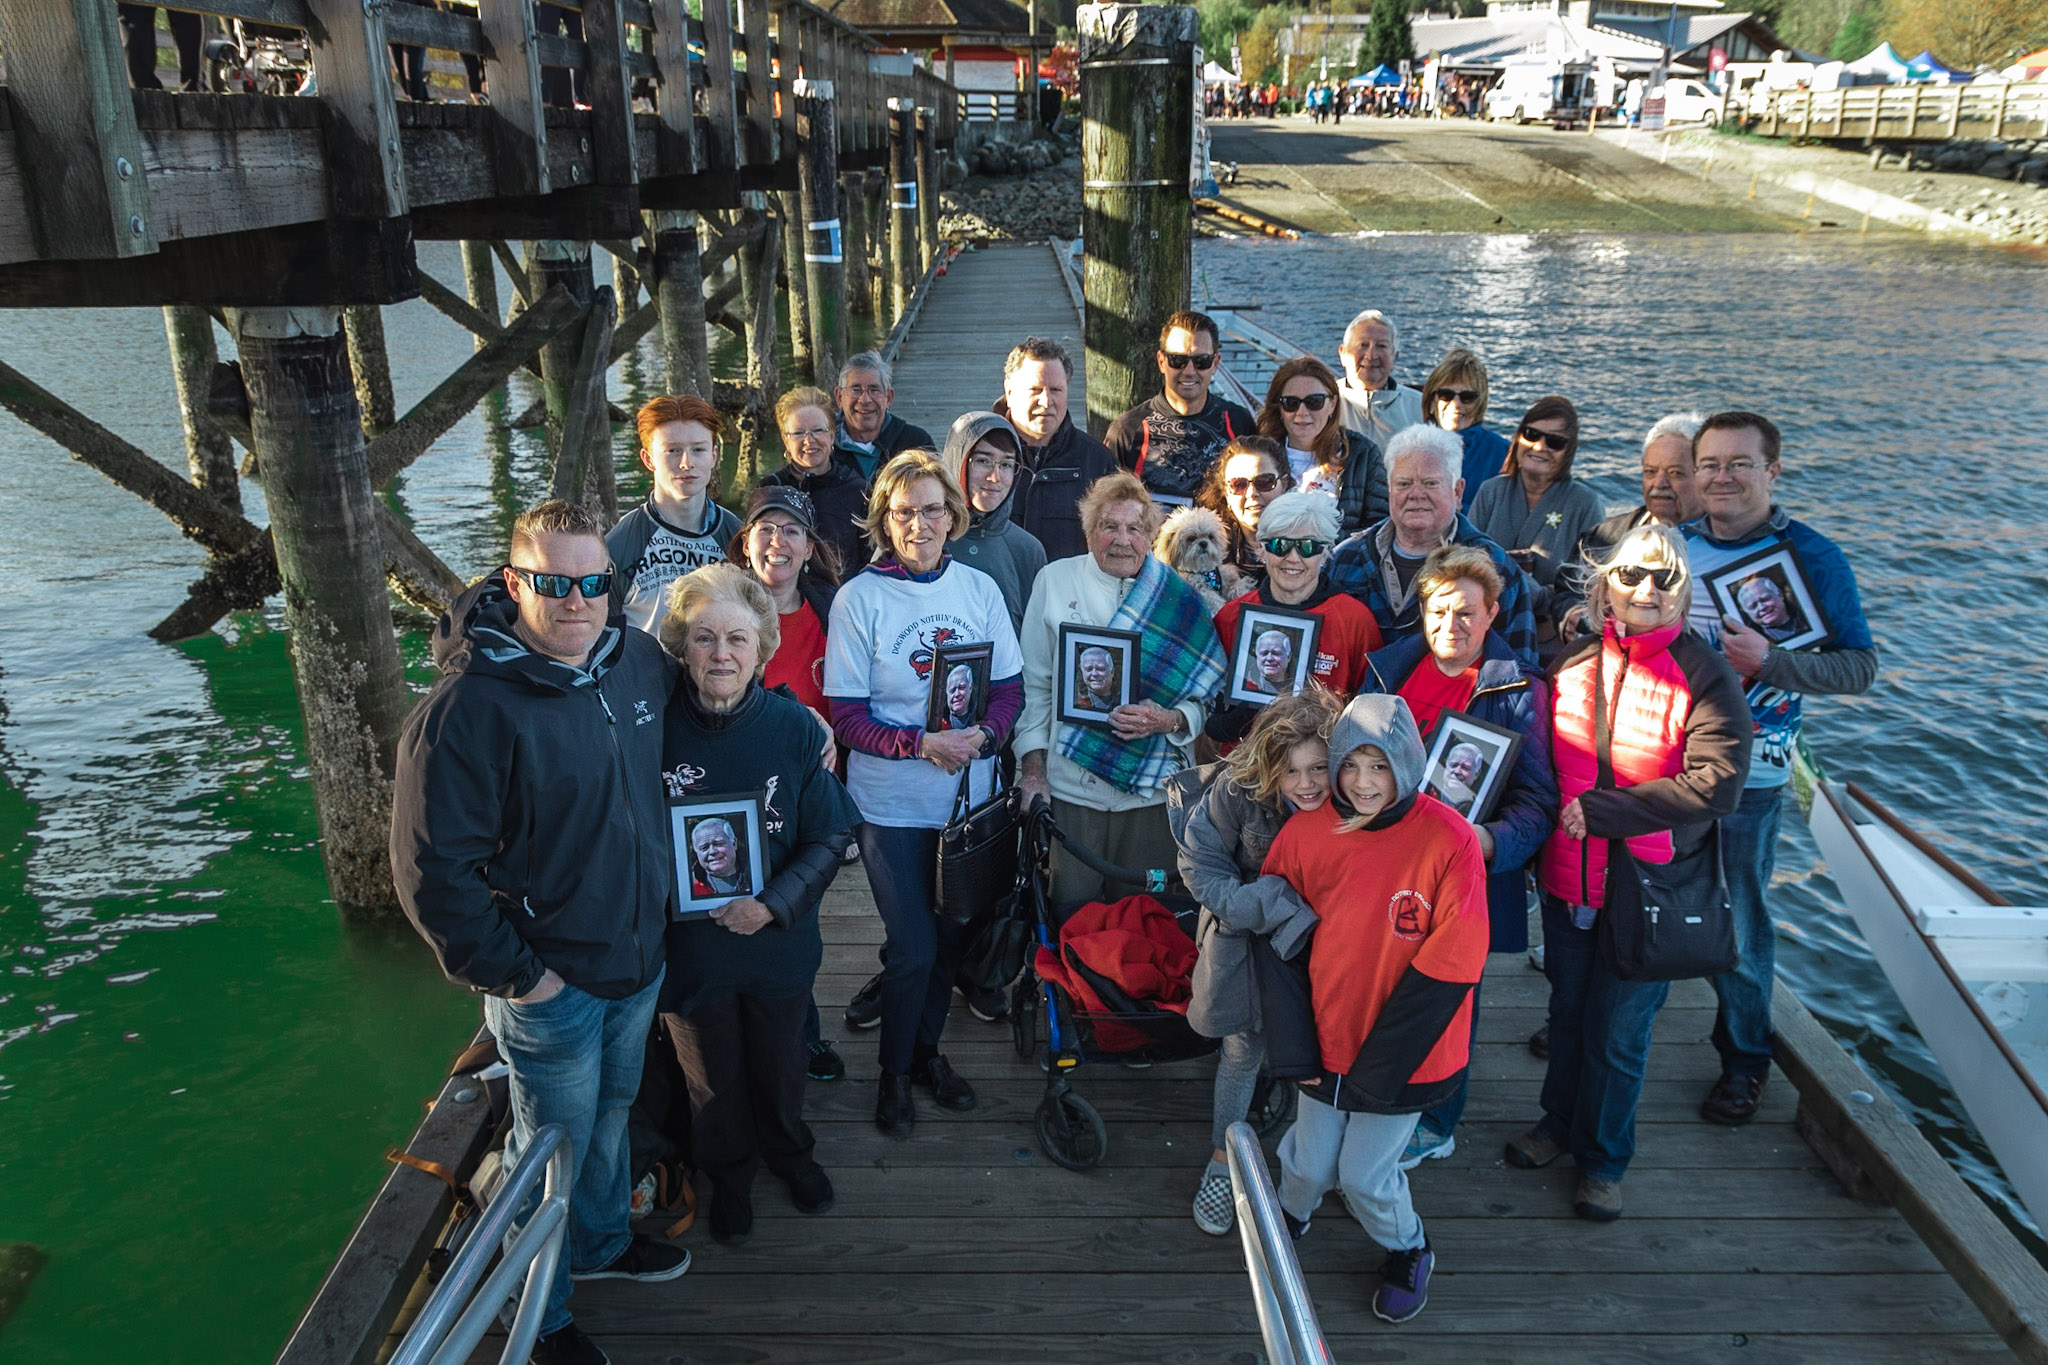 The family of the late Daniel Strain during his dedication at the Inlet Spring Regatta on April 27. He will be inducted into the Coquitlam Sports Hall of Fame on June 20. (Photo: Joep Olthuis /Inlet Spring Regatta)